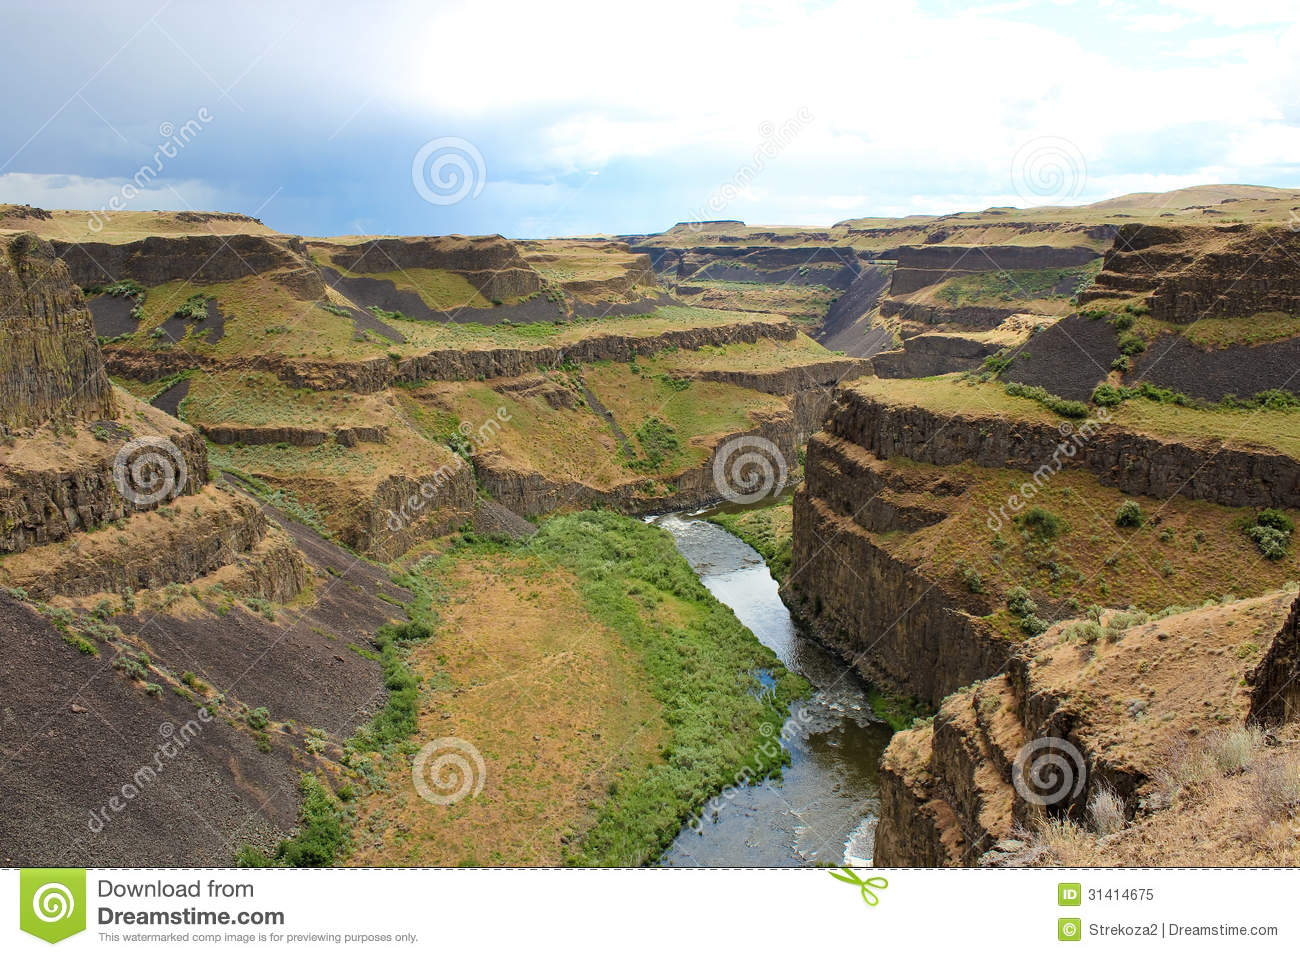 Palouse Canyon clipart #1, Download drawings